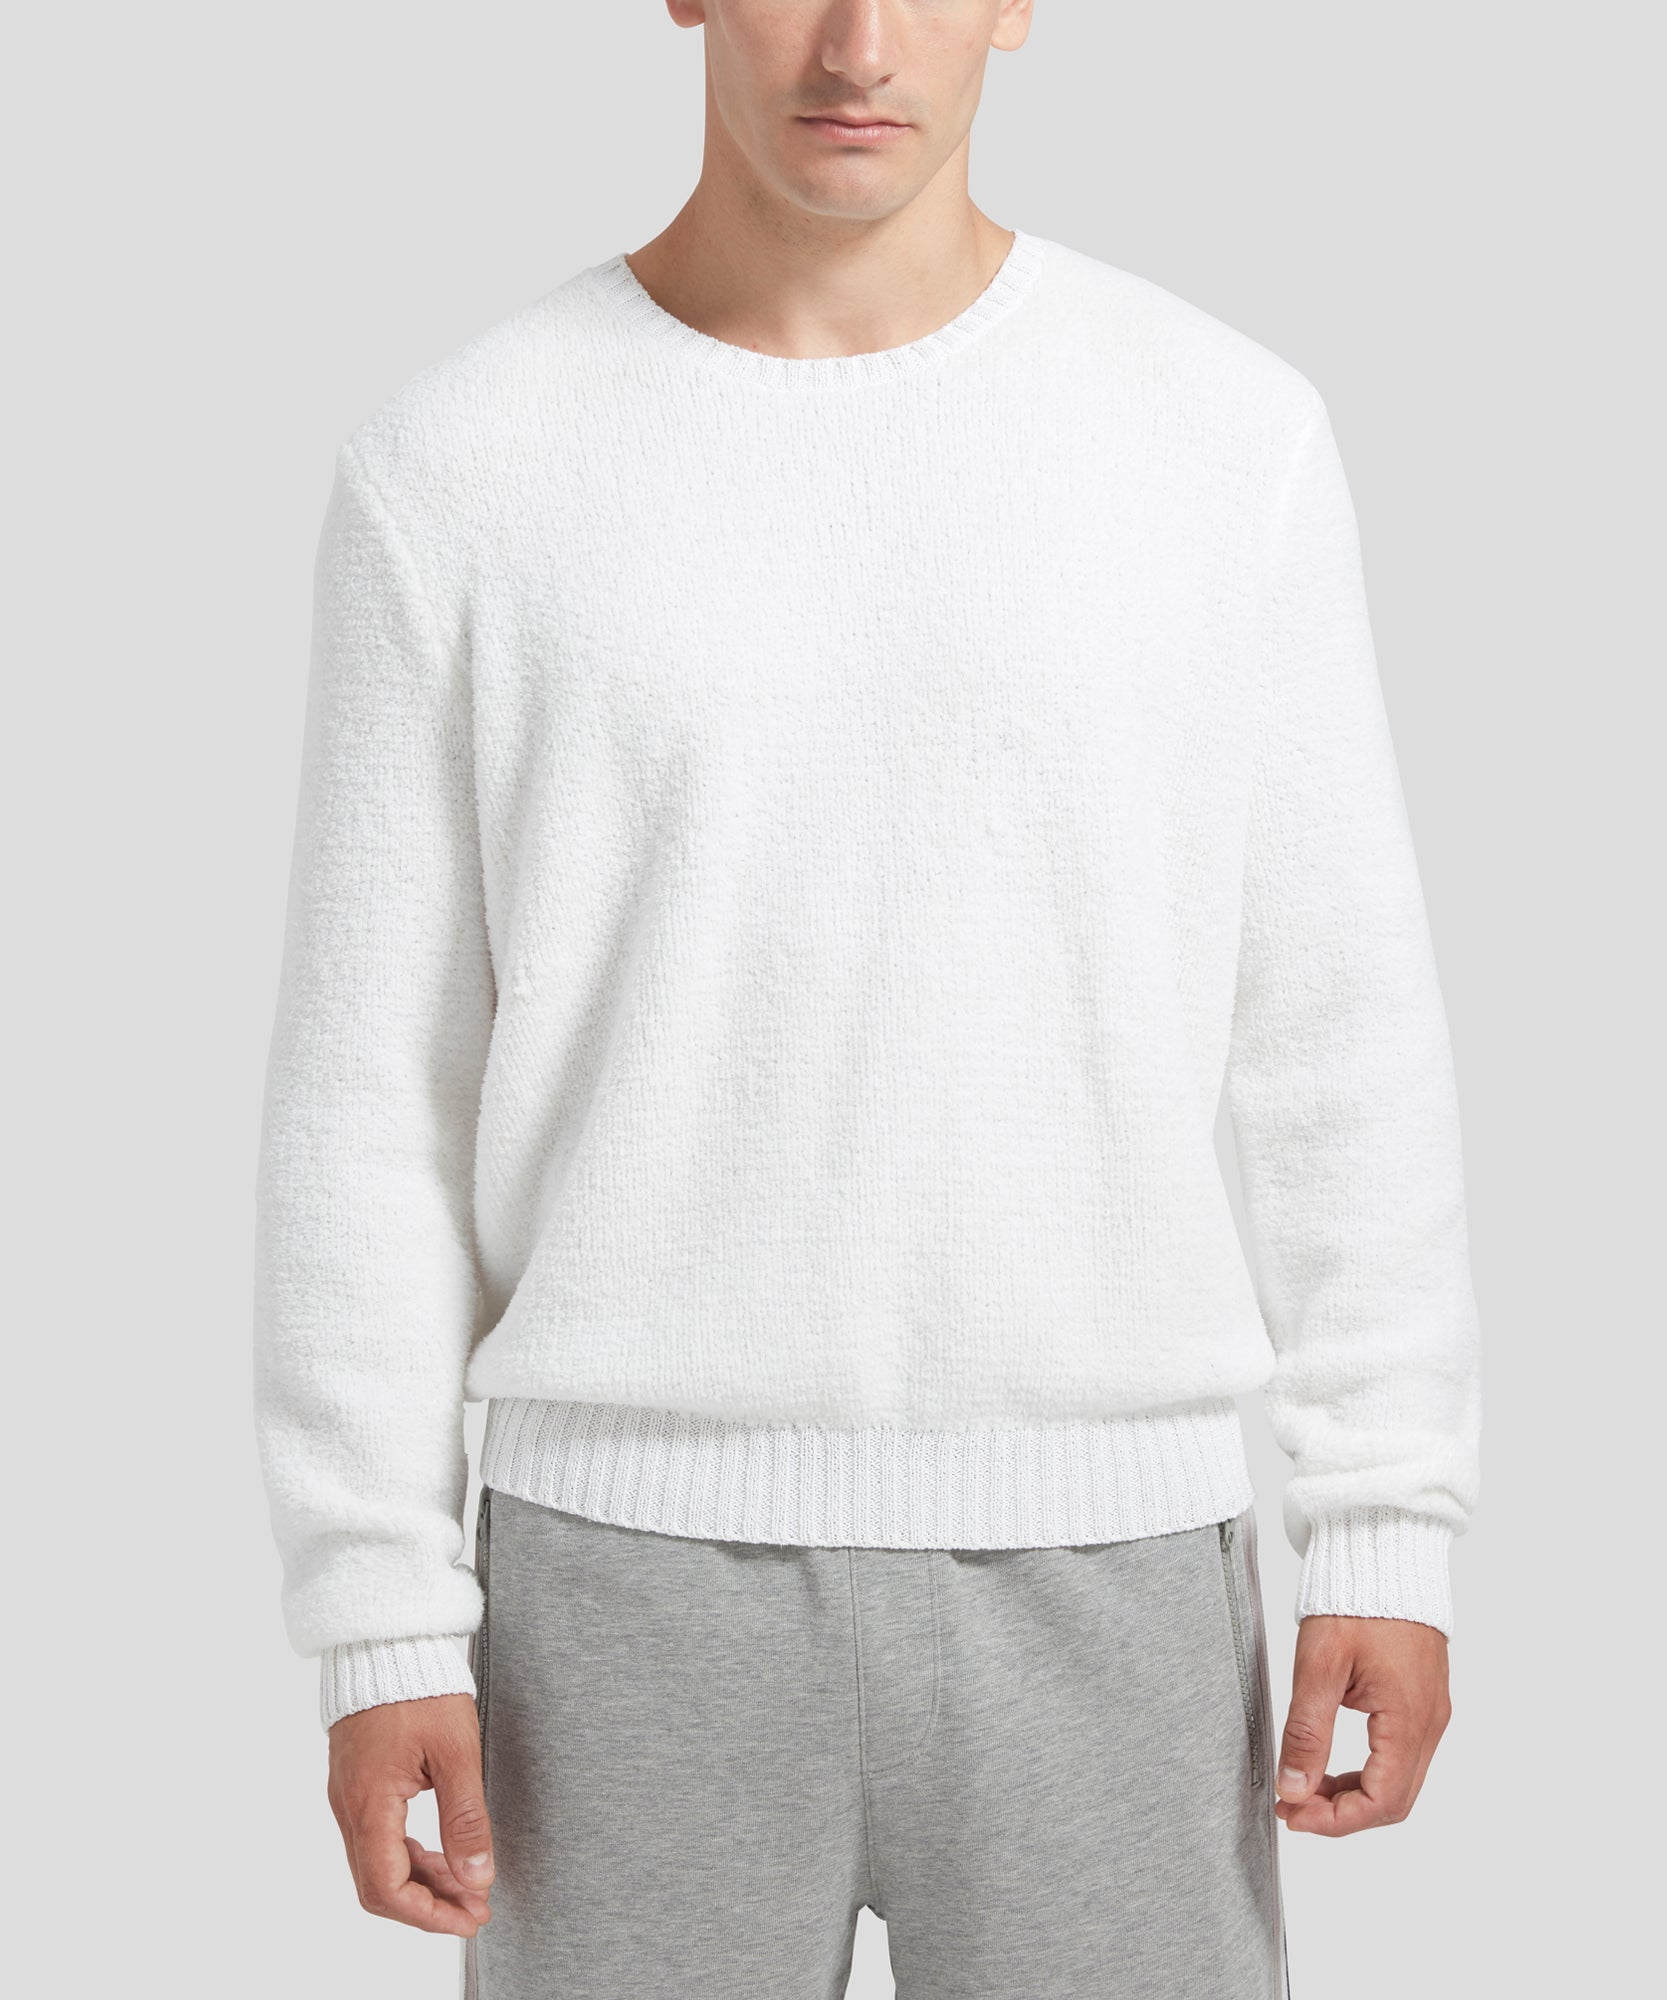 ATM Chenille Crew Neck Sweater